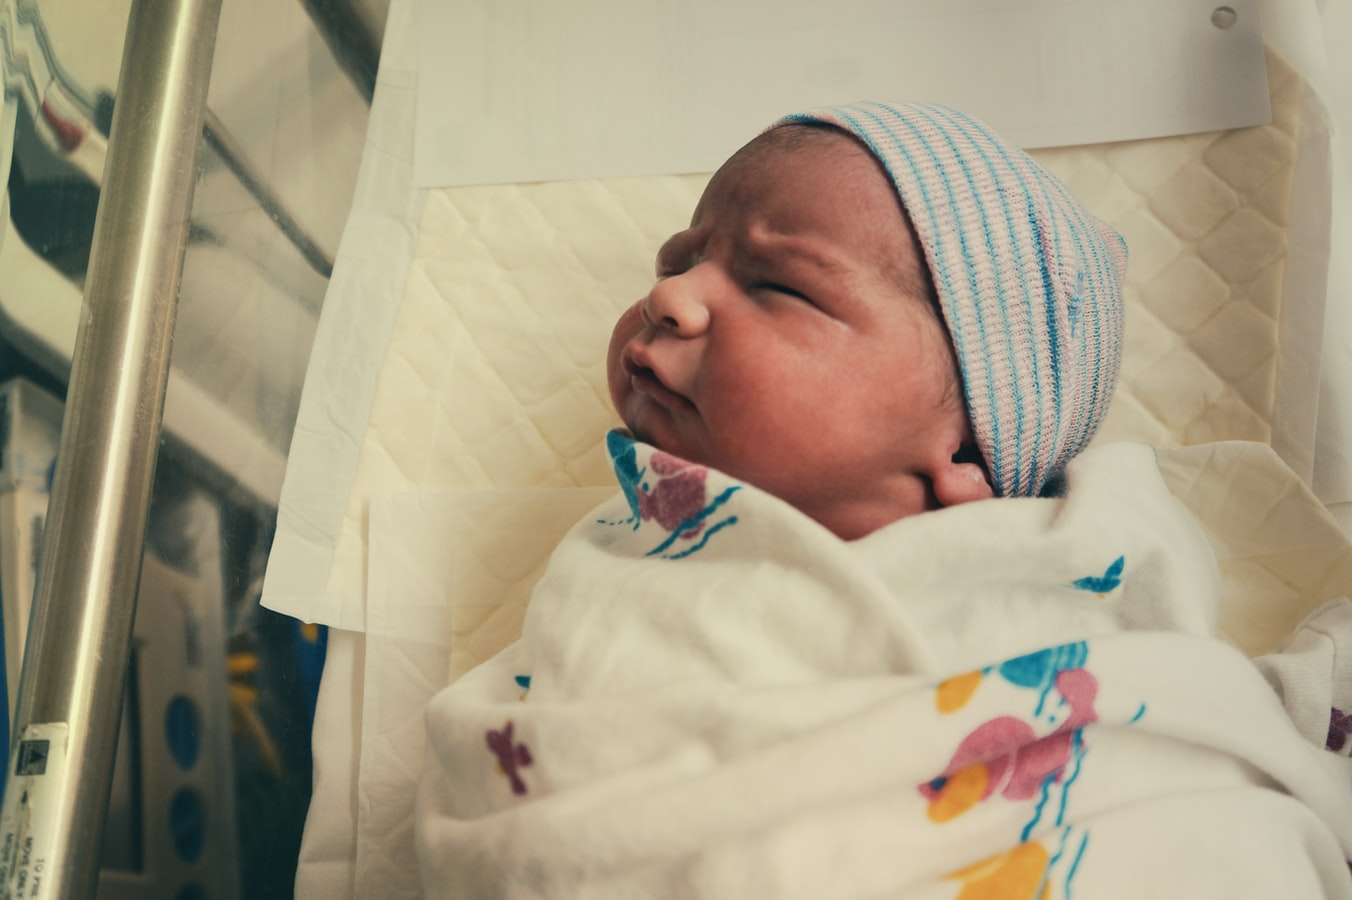 are pacifiers safe for newborns?